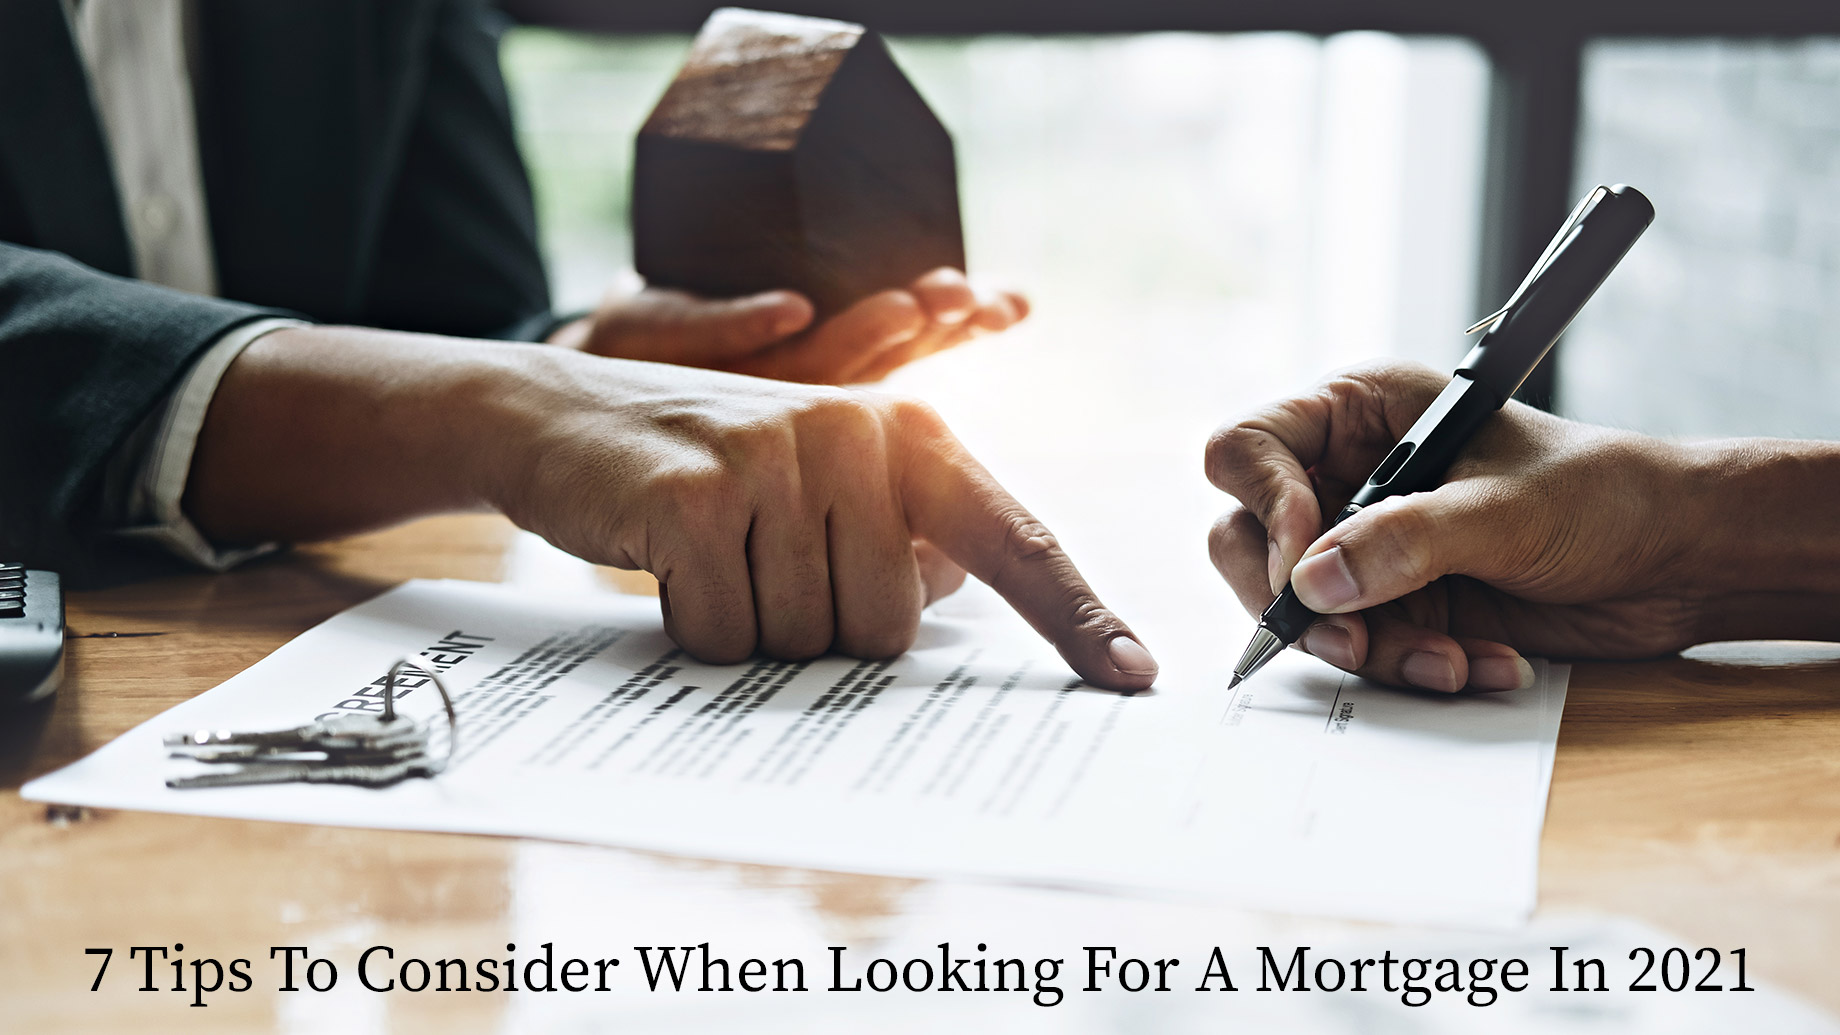 7 Tips To Consider When Looking For A Mortgage In 2021